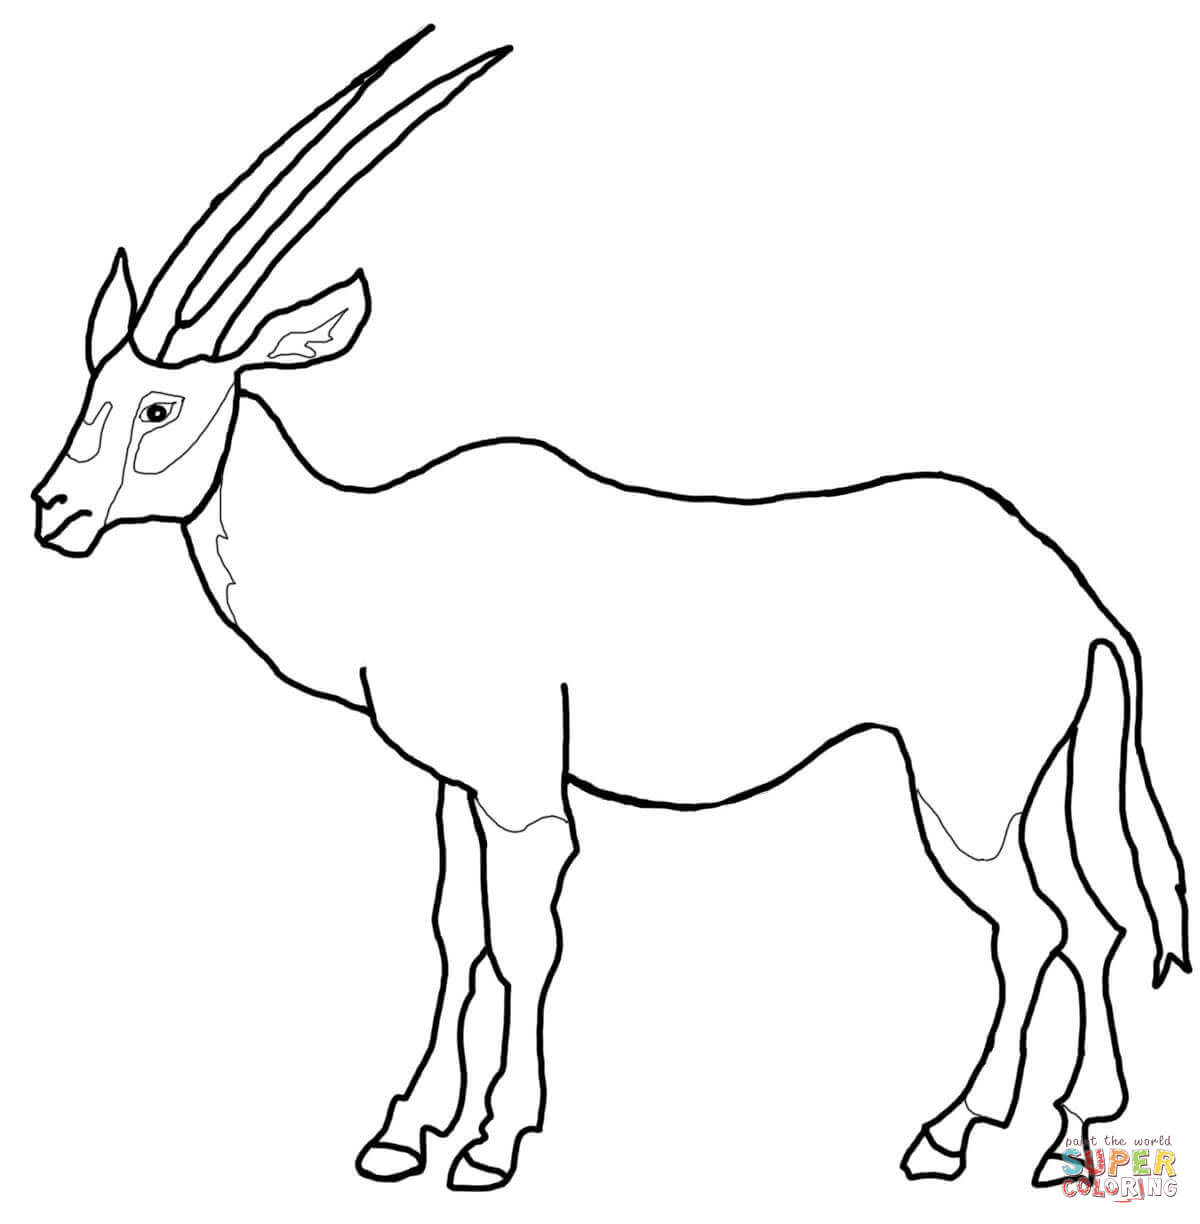 Oryx clipart Oryx Pages Arabian Coloring coloring